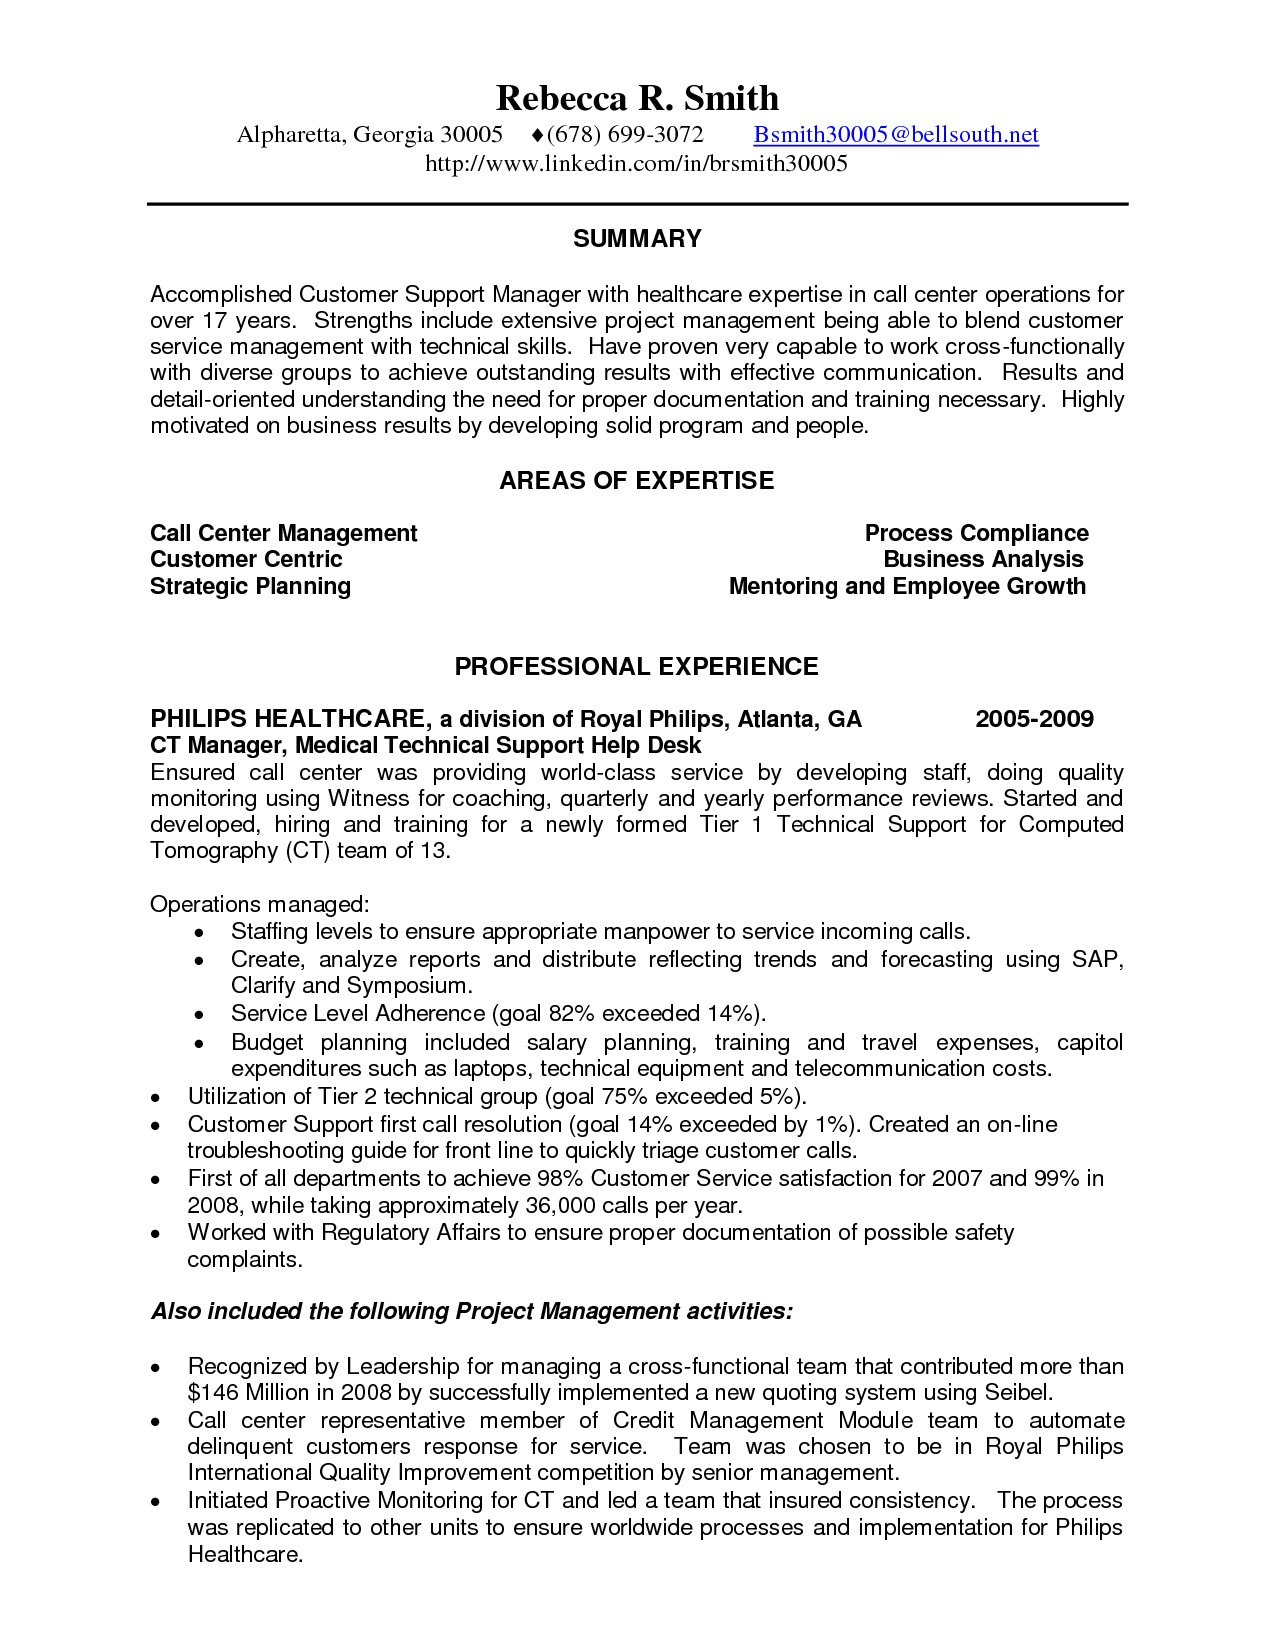 Sample Resume for Quality Analyst In Bpo Build A Resume In Word Resume Examples for Pharmacy